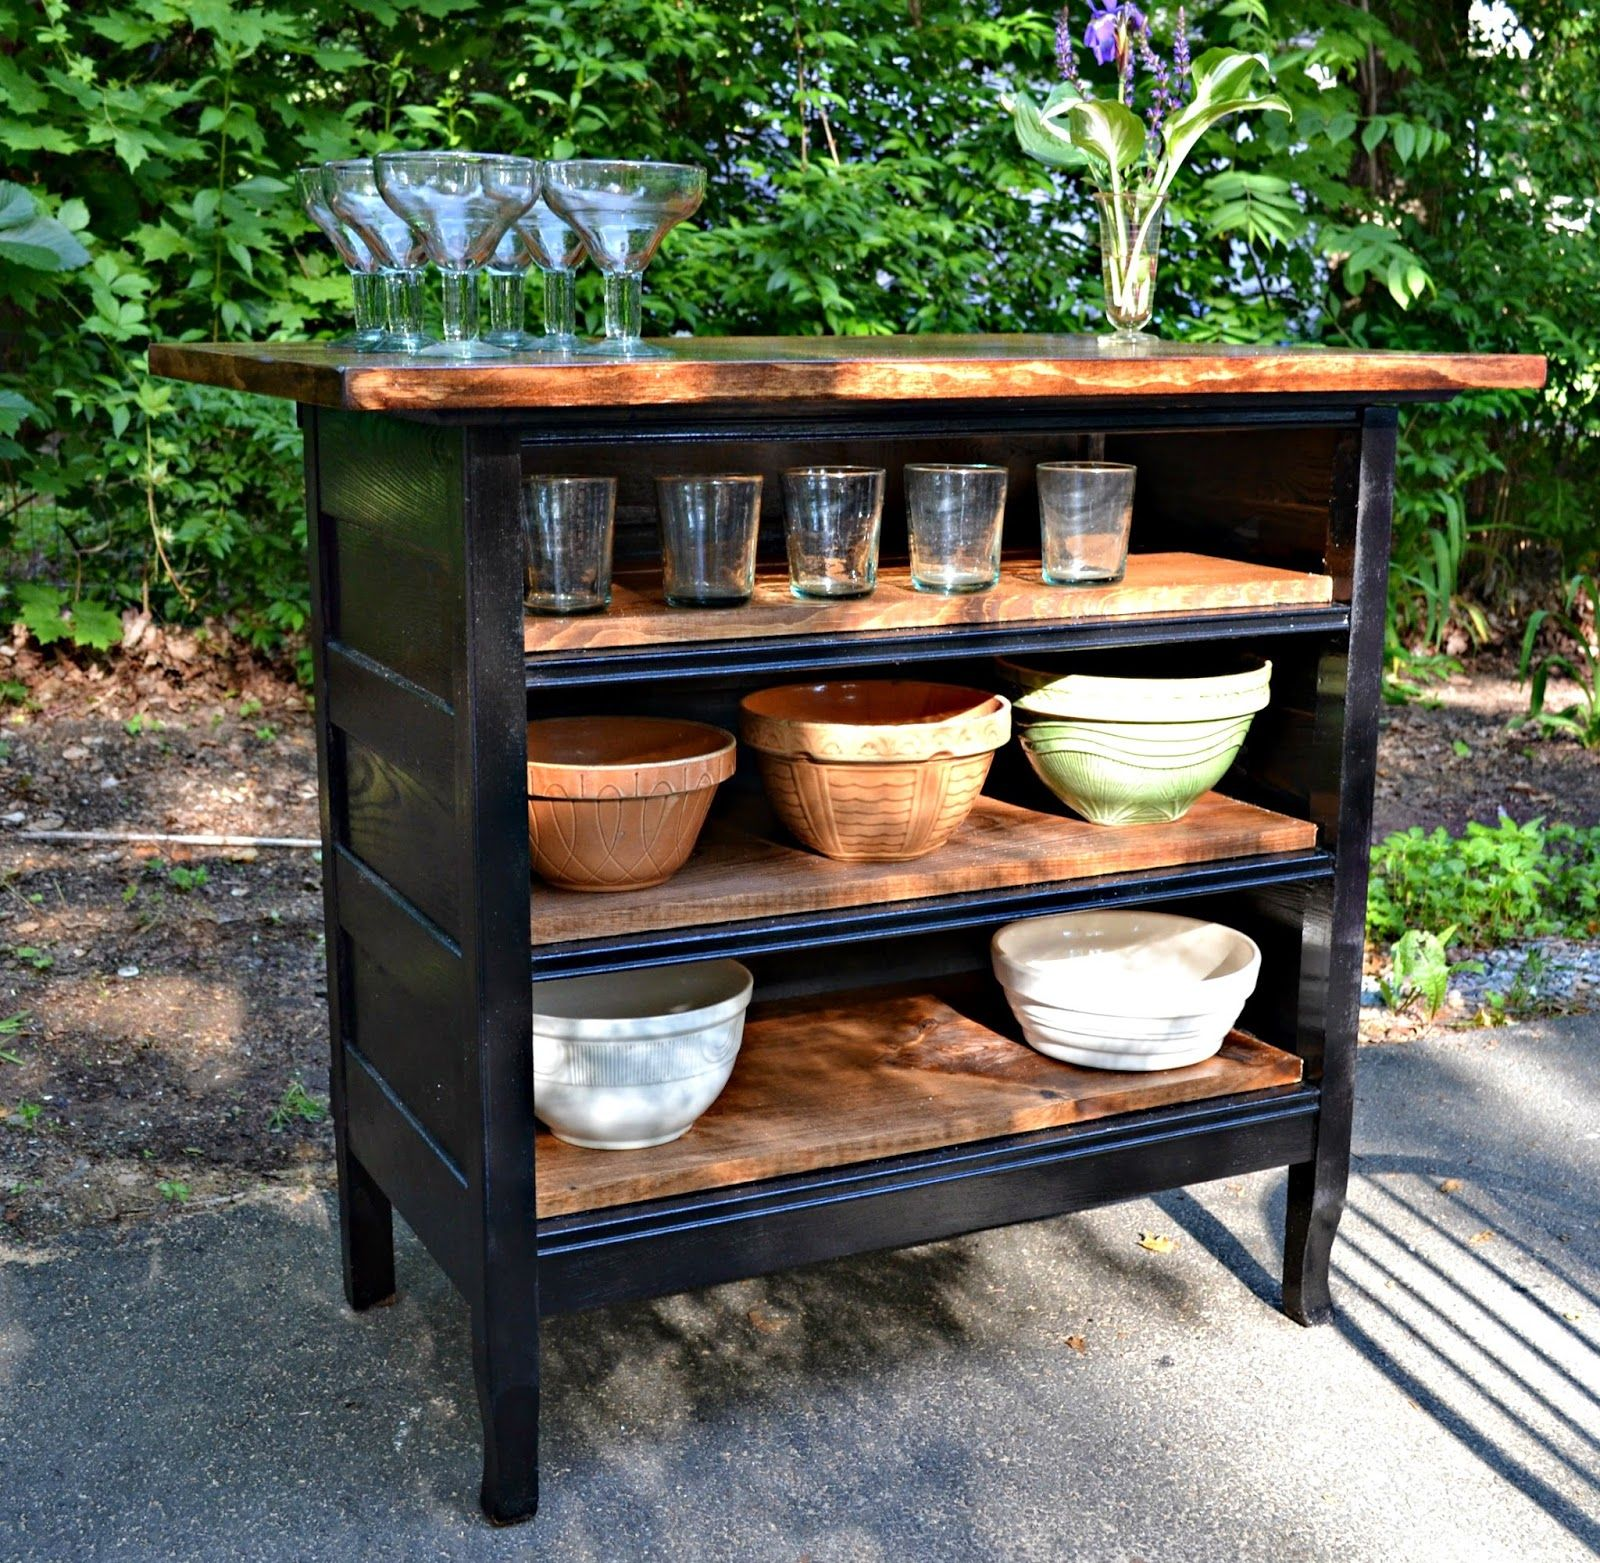 Repurposed Antique Dresser As A Kitchen Island With A: Antique Solid Oak 19th Century Dresser Turned Kitchen